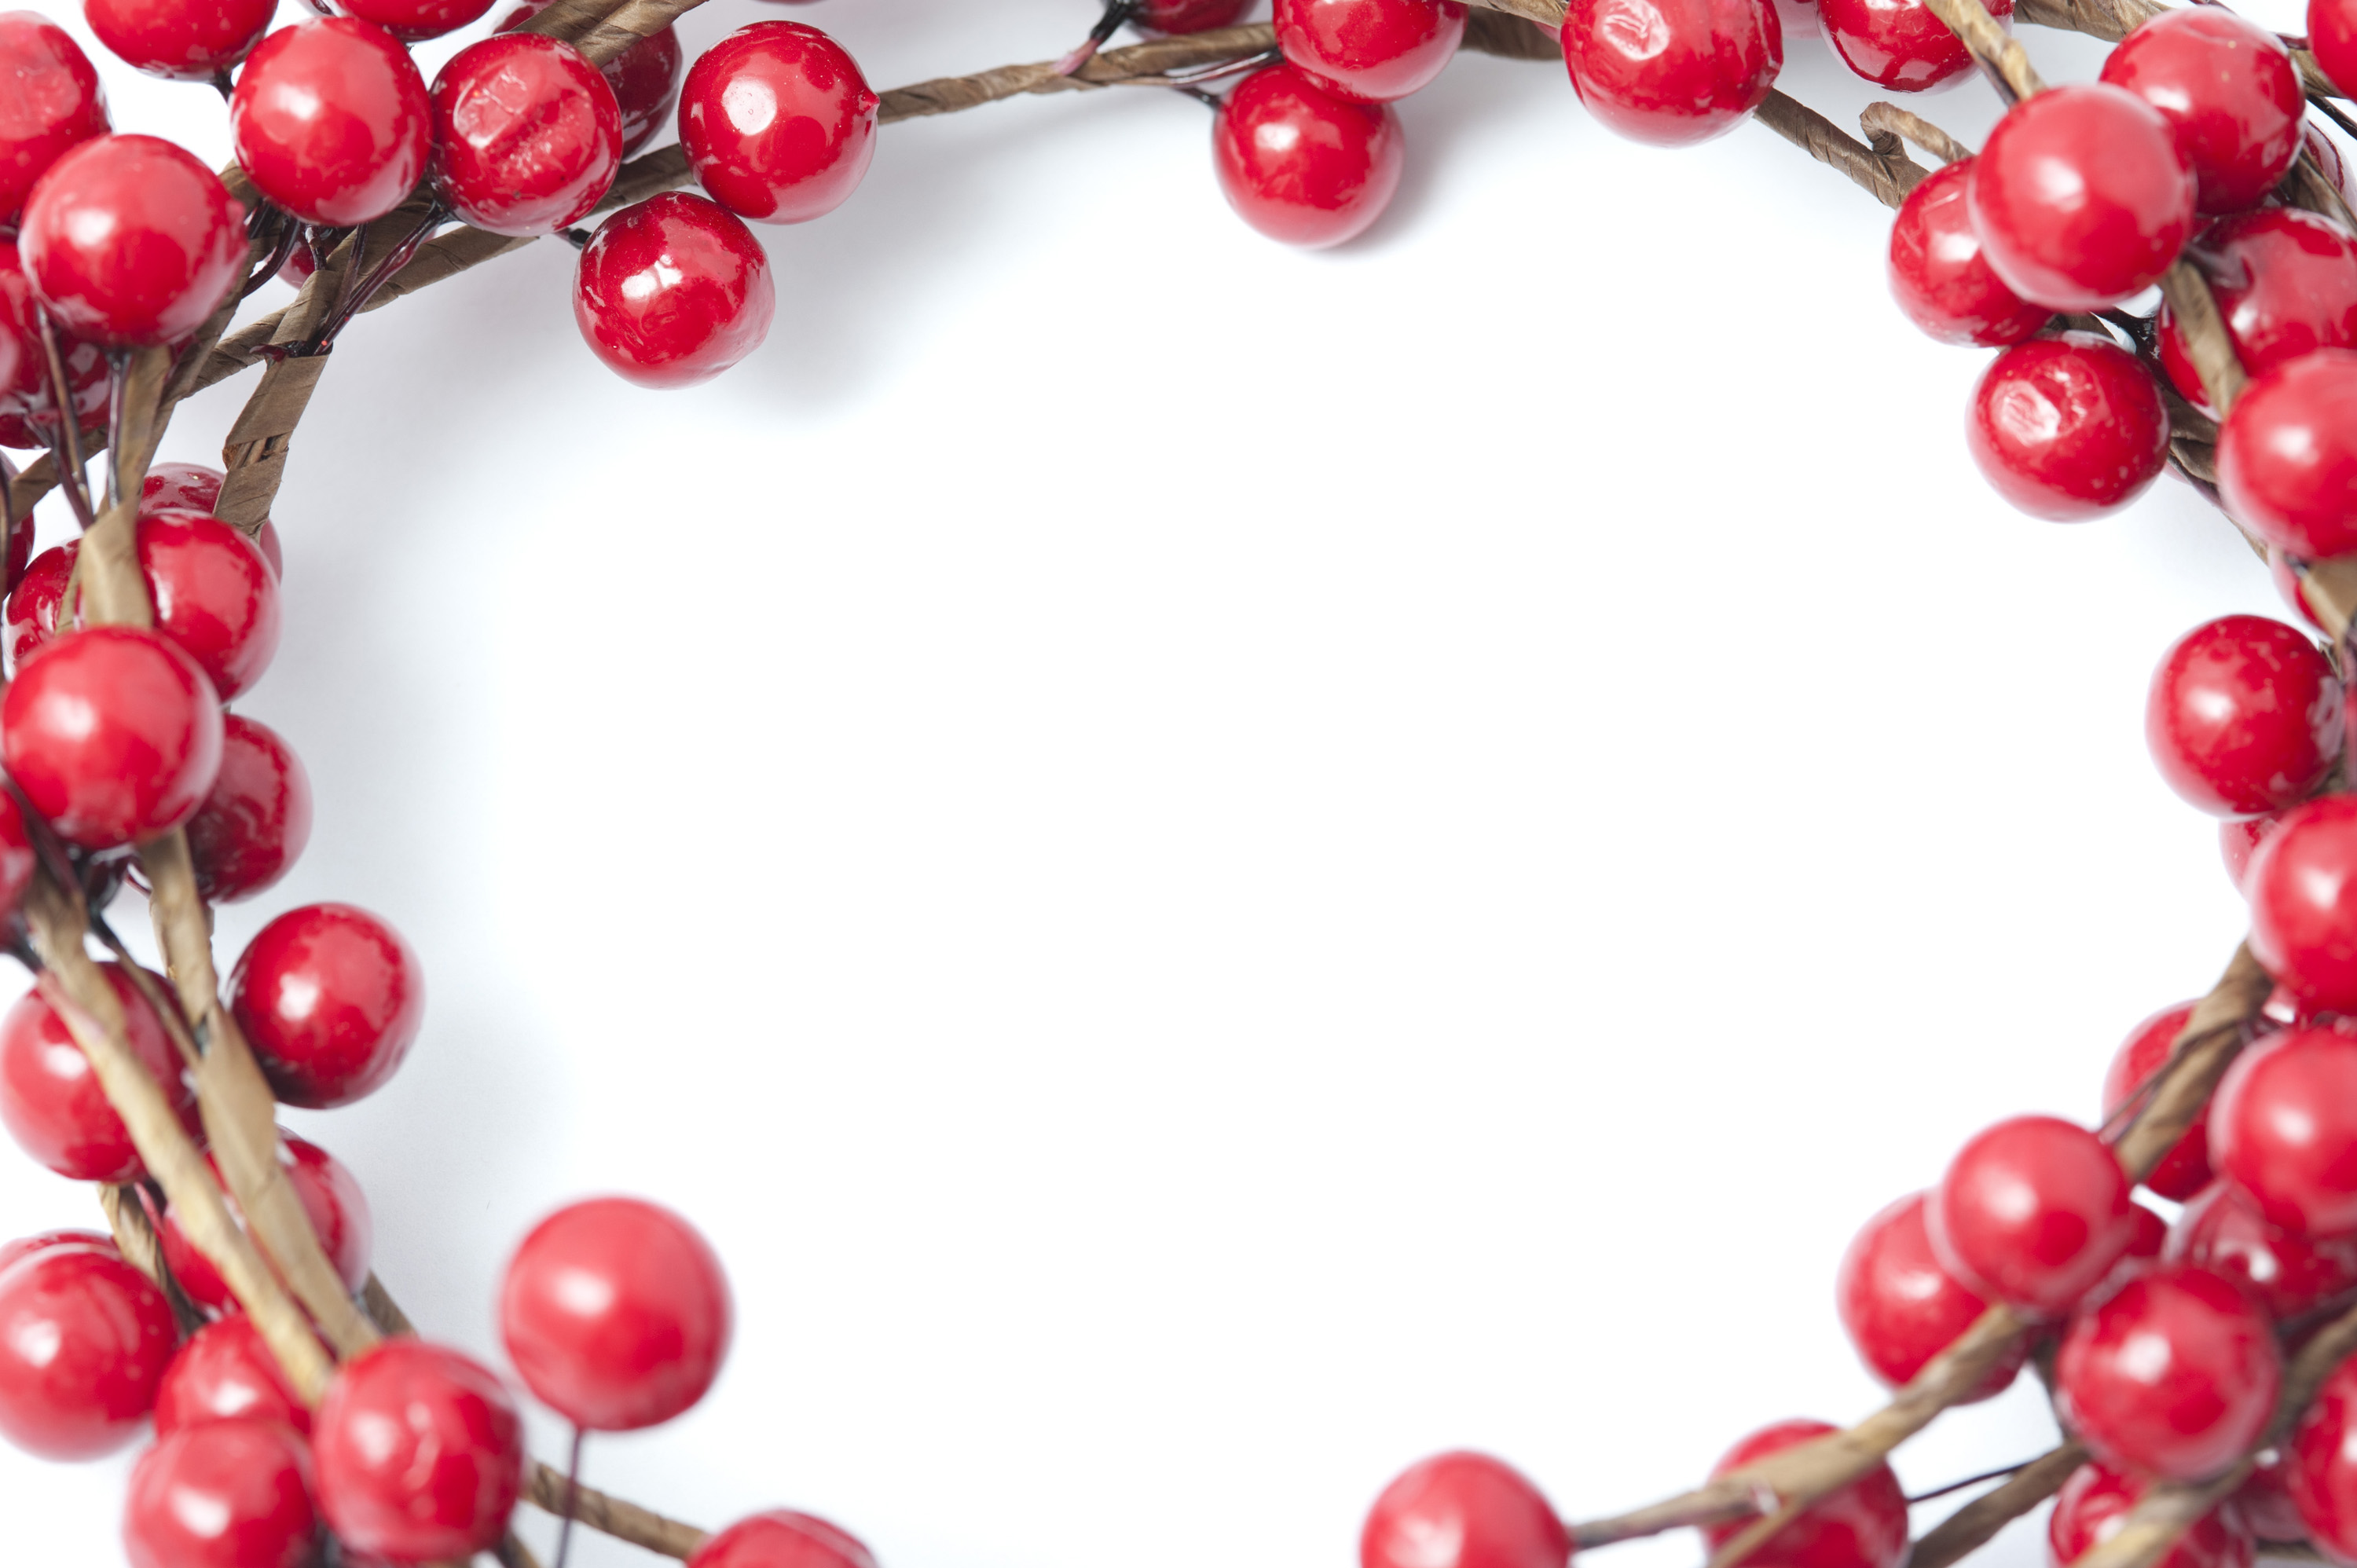 Bright red festive artificial Christmas berry border or frame around central white copy space for your greeting